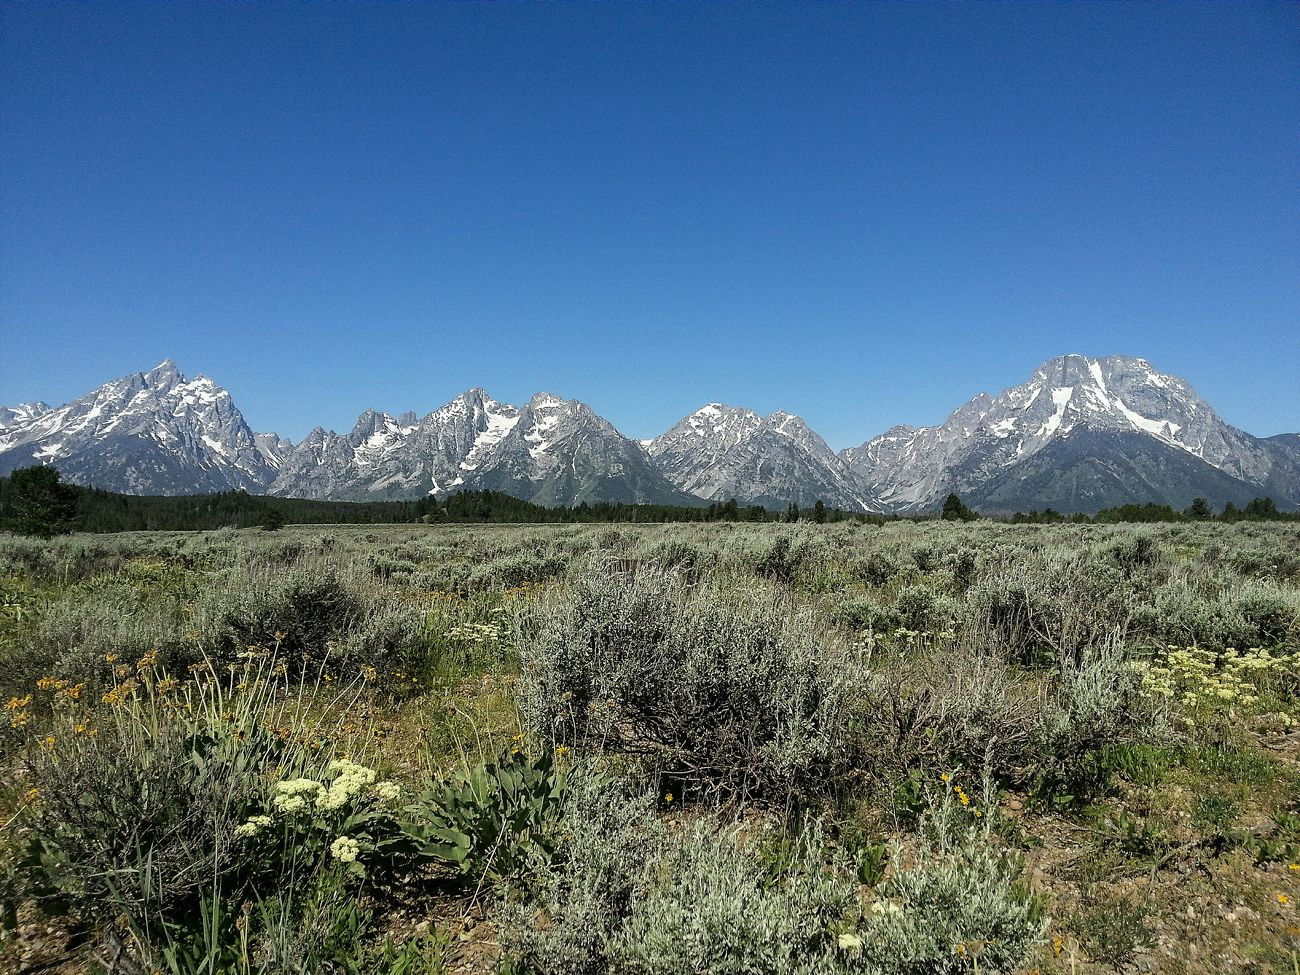 Exploring 14 national parks was incredible, but there is so much more to see. I took notes on areas I wasn't able to get to and others I will explore further. One place definitely hits the top of the list. Grand Teton National Park, particularly for mountaineering. I'm putting this one my must climb list! RoadTripxUSA Mountain Nature Landscape